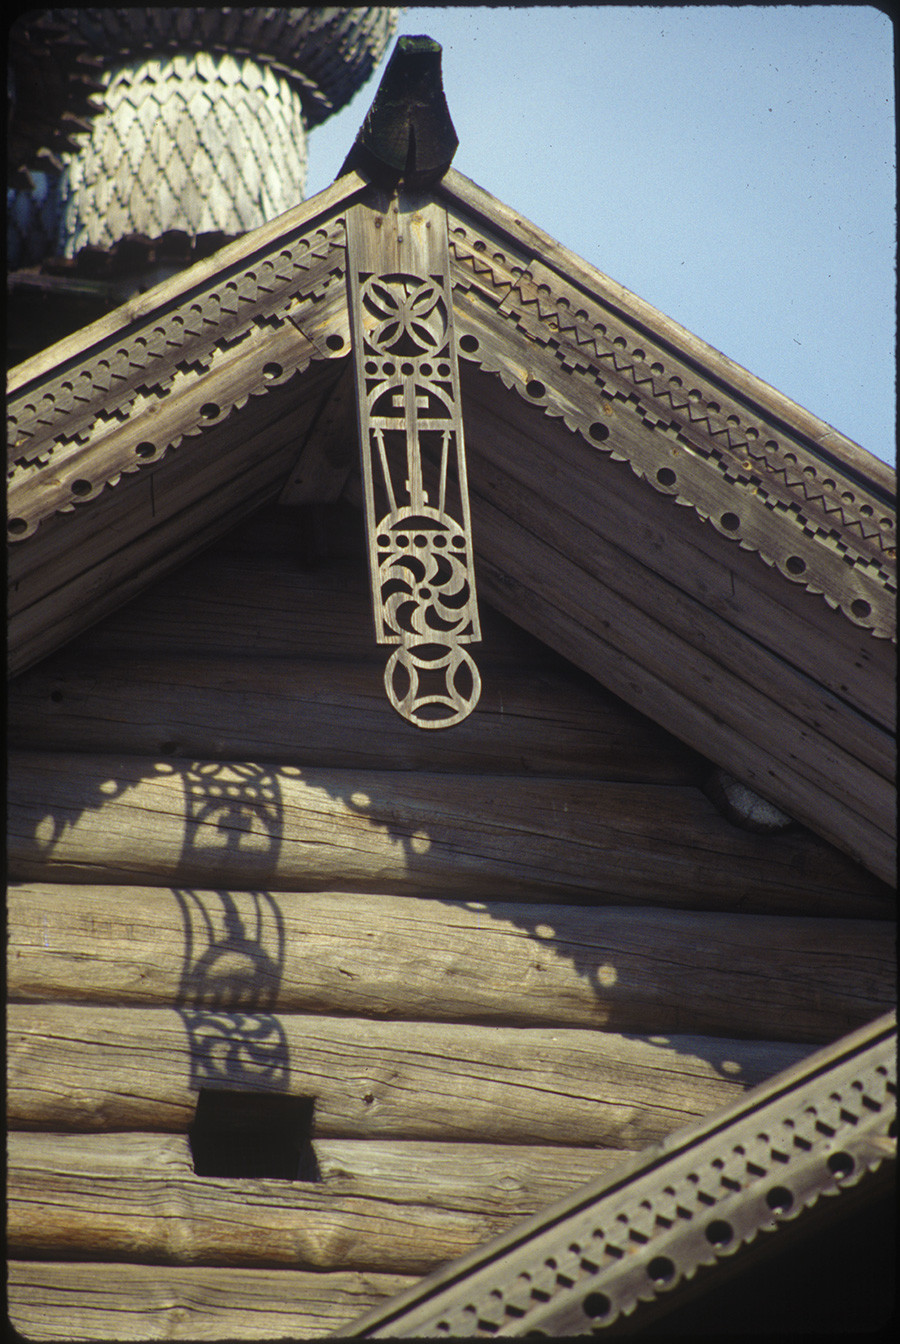 Church of the Intercession. West facade with decorative carving (solar sign, cross & Instruments of Christ's Passion). August 6, 1991